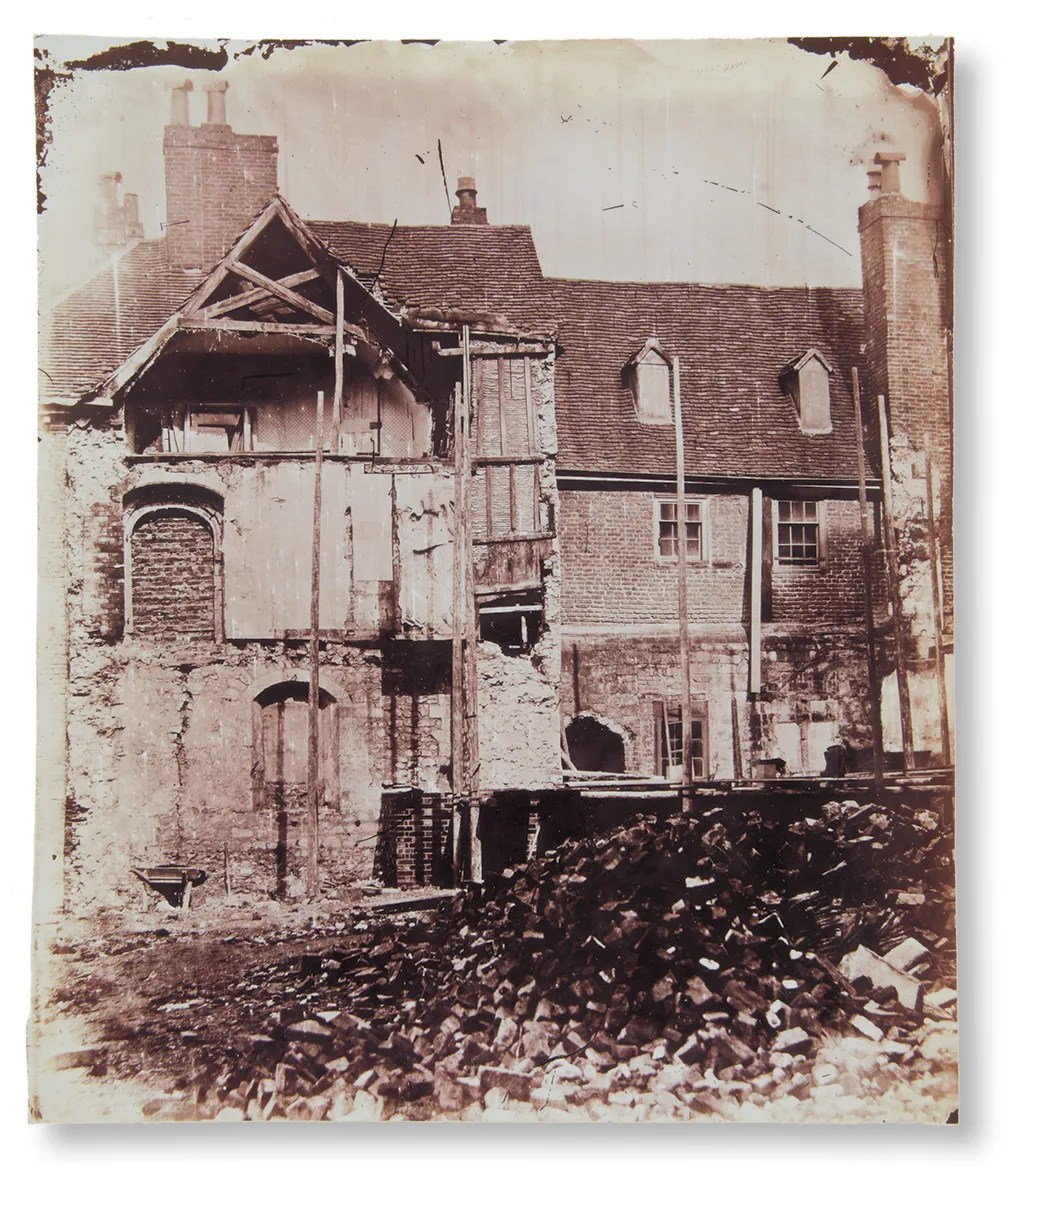 left The 'King's Hall' in the Lower Ward was largely demolished in the late 15th century, but evidence of the original 12th-century chamber block can be seen in this photograph dating from 1859. It was taken during the demolition of a Tudor block called Denton's Commons, which revealed a wall and two blocked doorways lined with finely finished masonry and part of the scissor-braced roof frame.